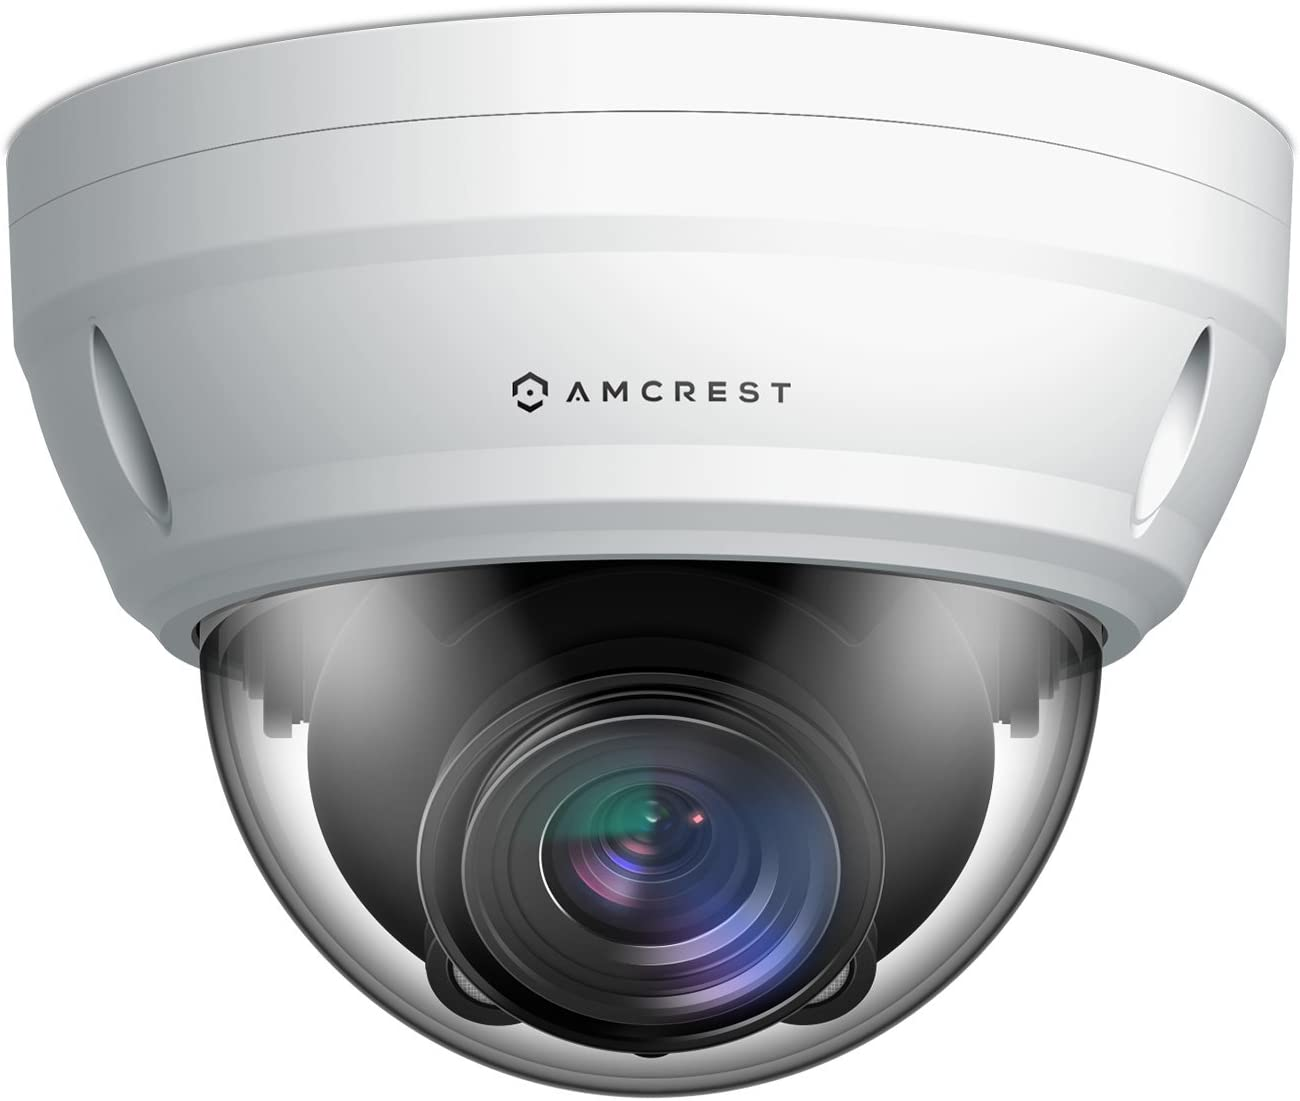 Amcrest ProHD 5X Optical Zoom Outdoor PoE IP Camera Dome, 1080P 1920TVL 2MP, 164ft Night Vision, Motorized Varifocal Lens 2.7-13.5mm, White IP2M-856EW